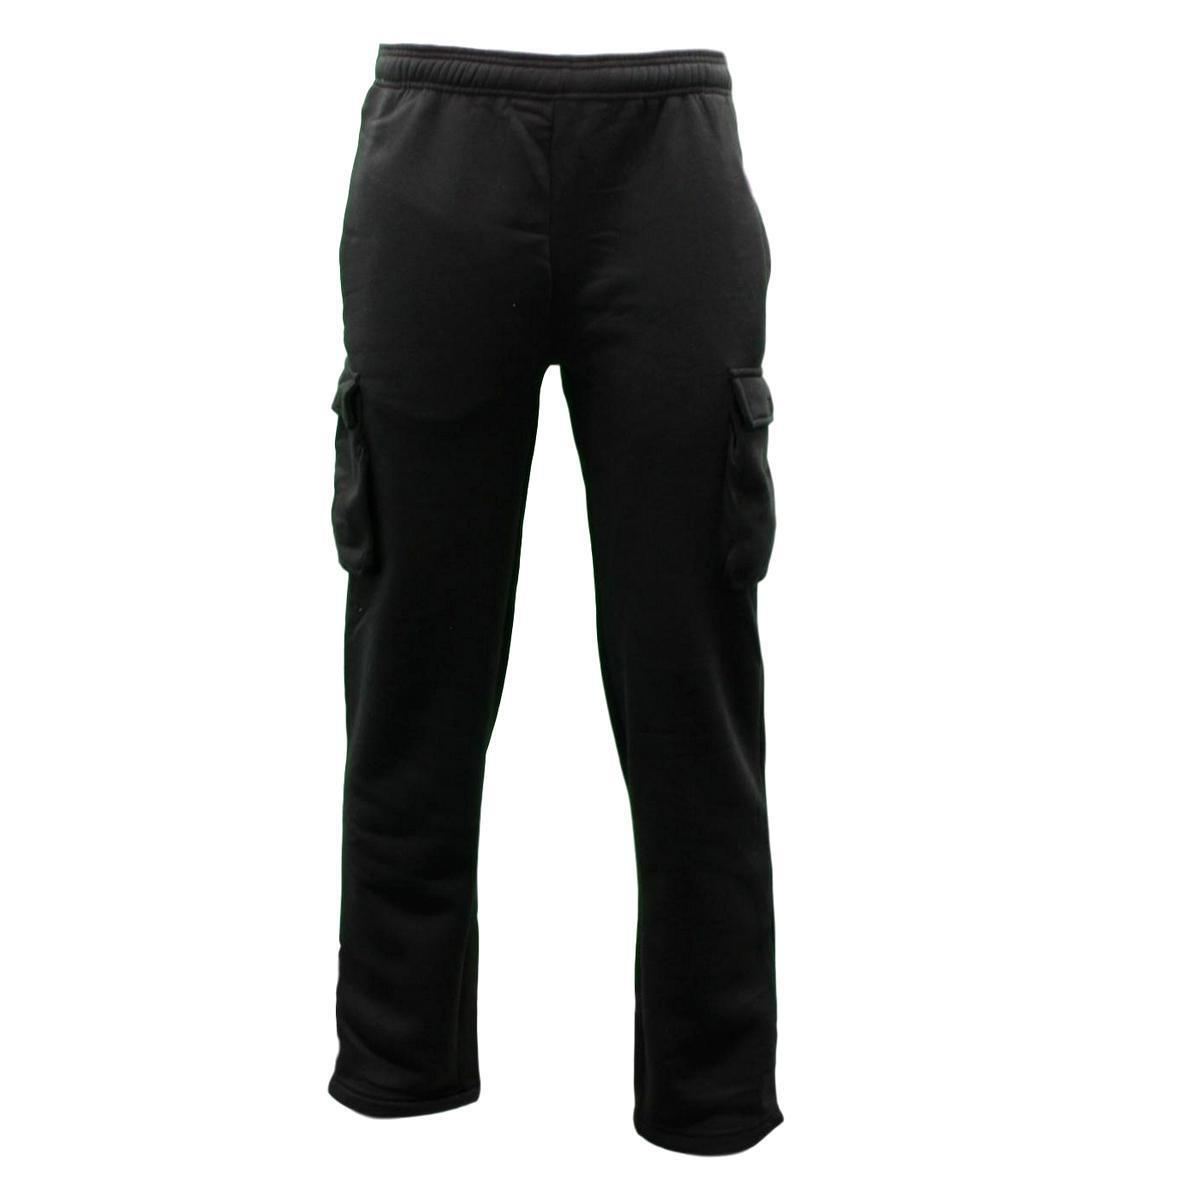 NEW-Men-039-s-Cargo-Fleece-Casual-Jogging-Sports-Track-Suit-Pants-Trackies thumbnail 4